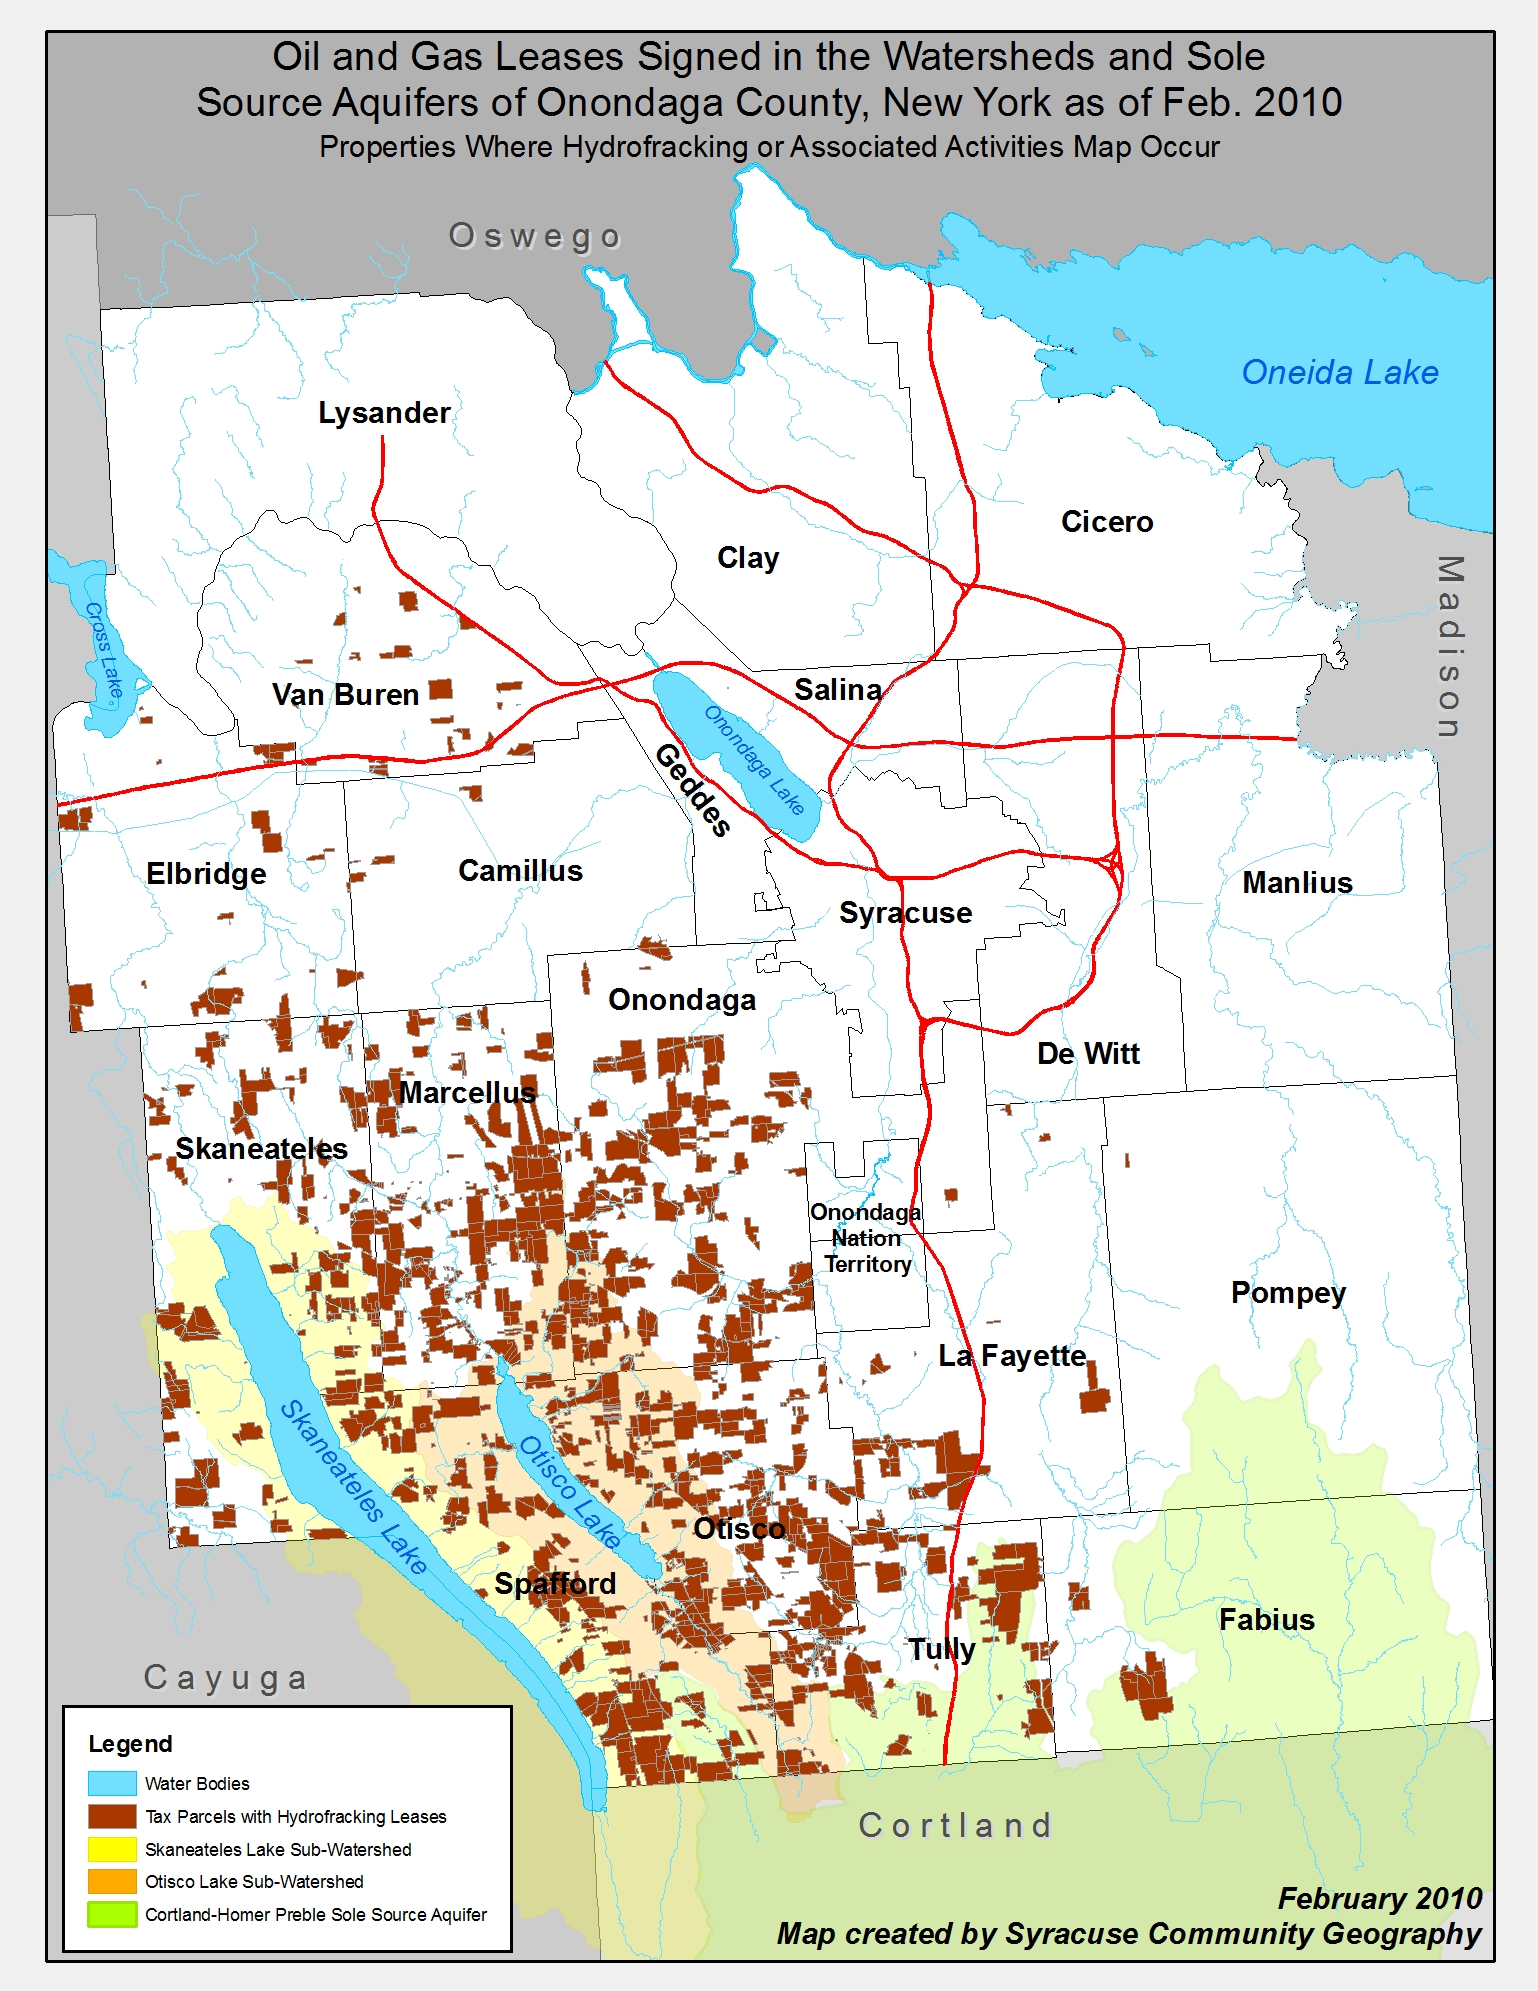 Watersheds Sole Source Aquifer With Leases